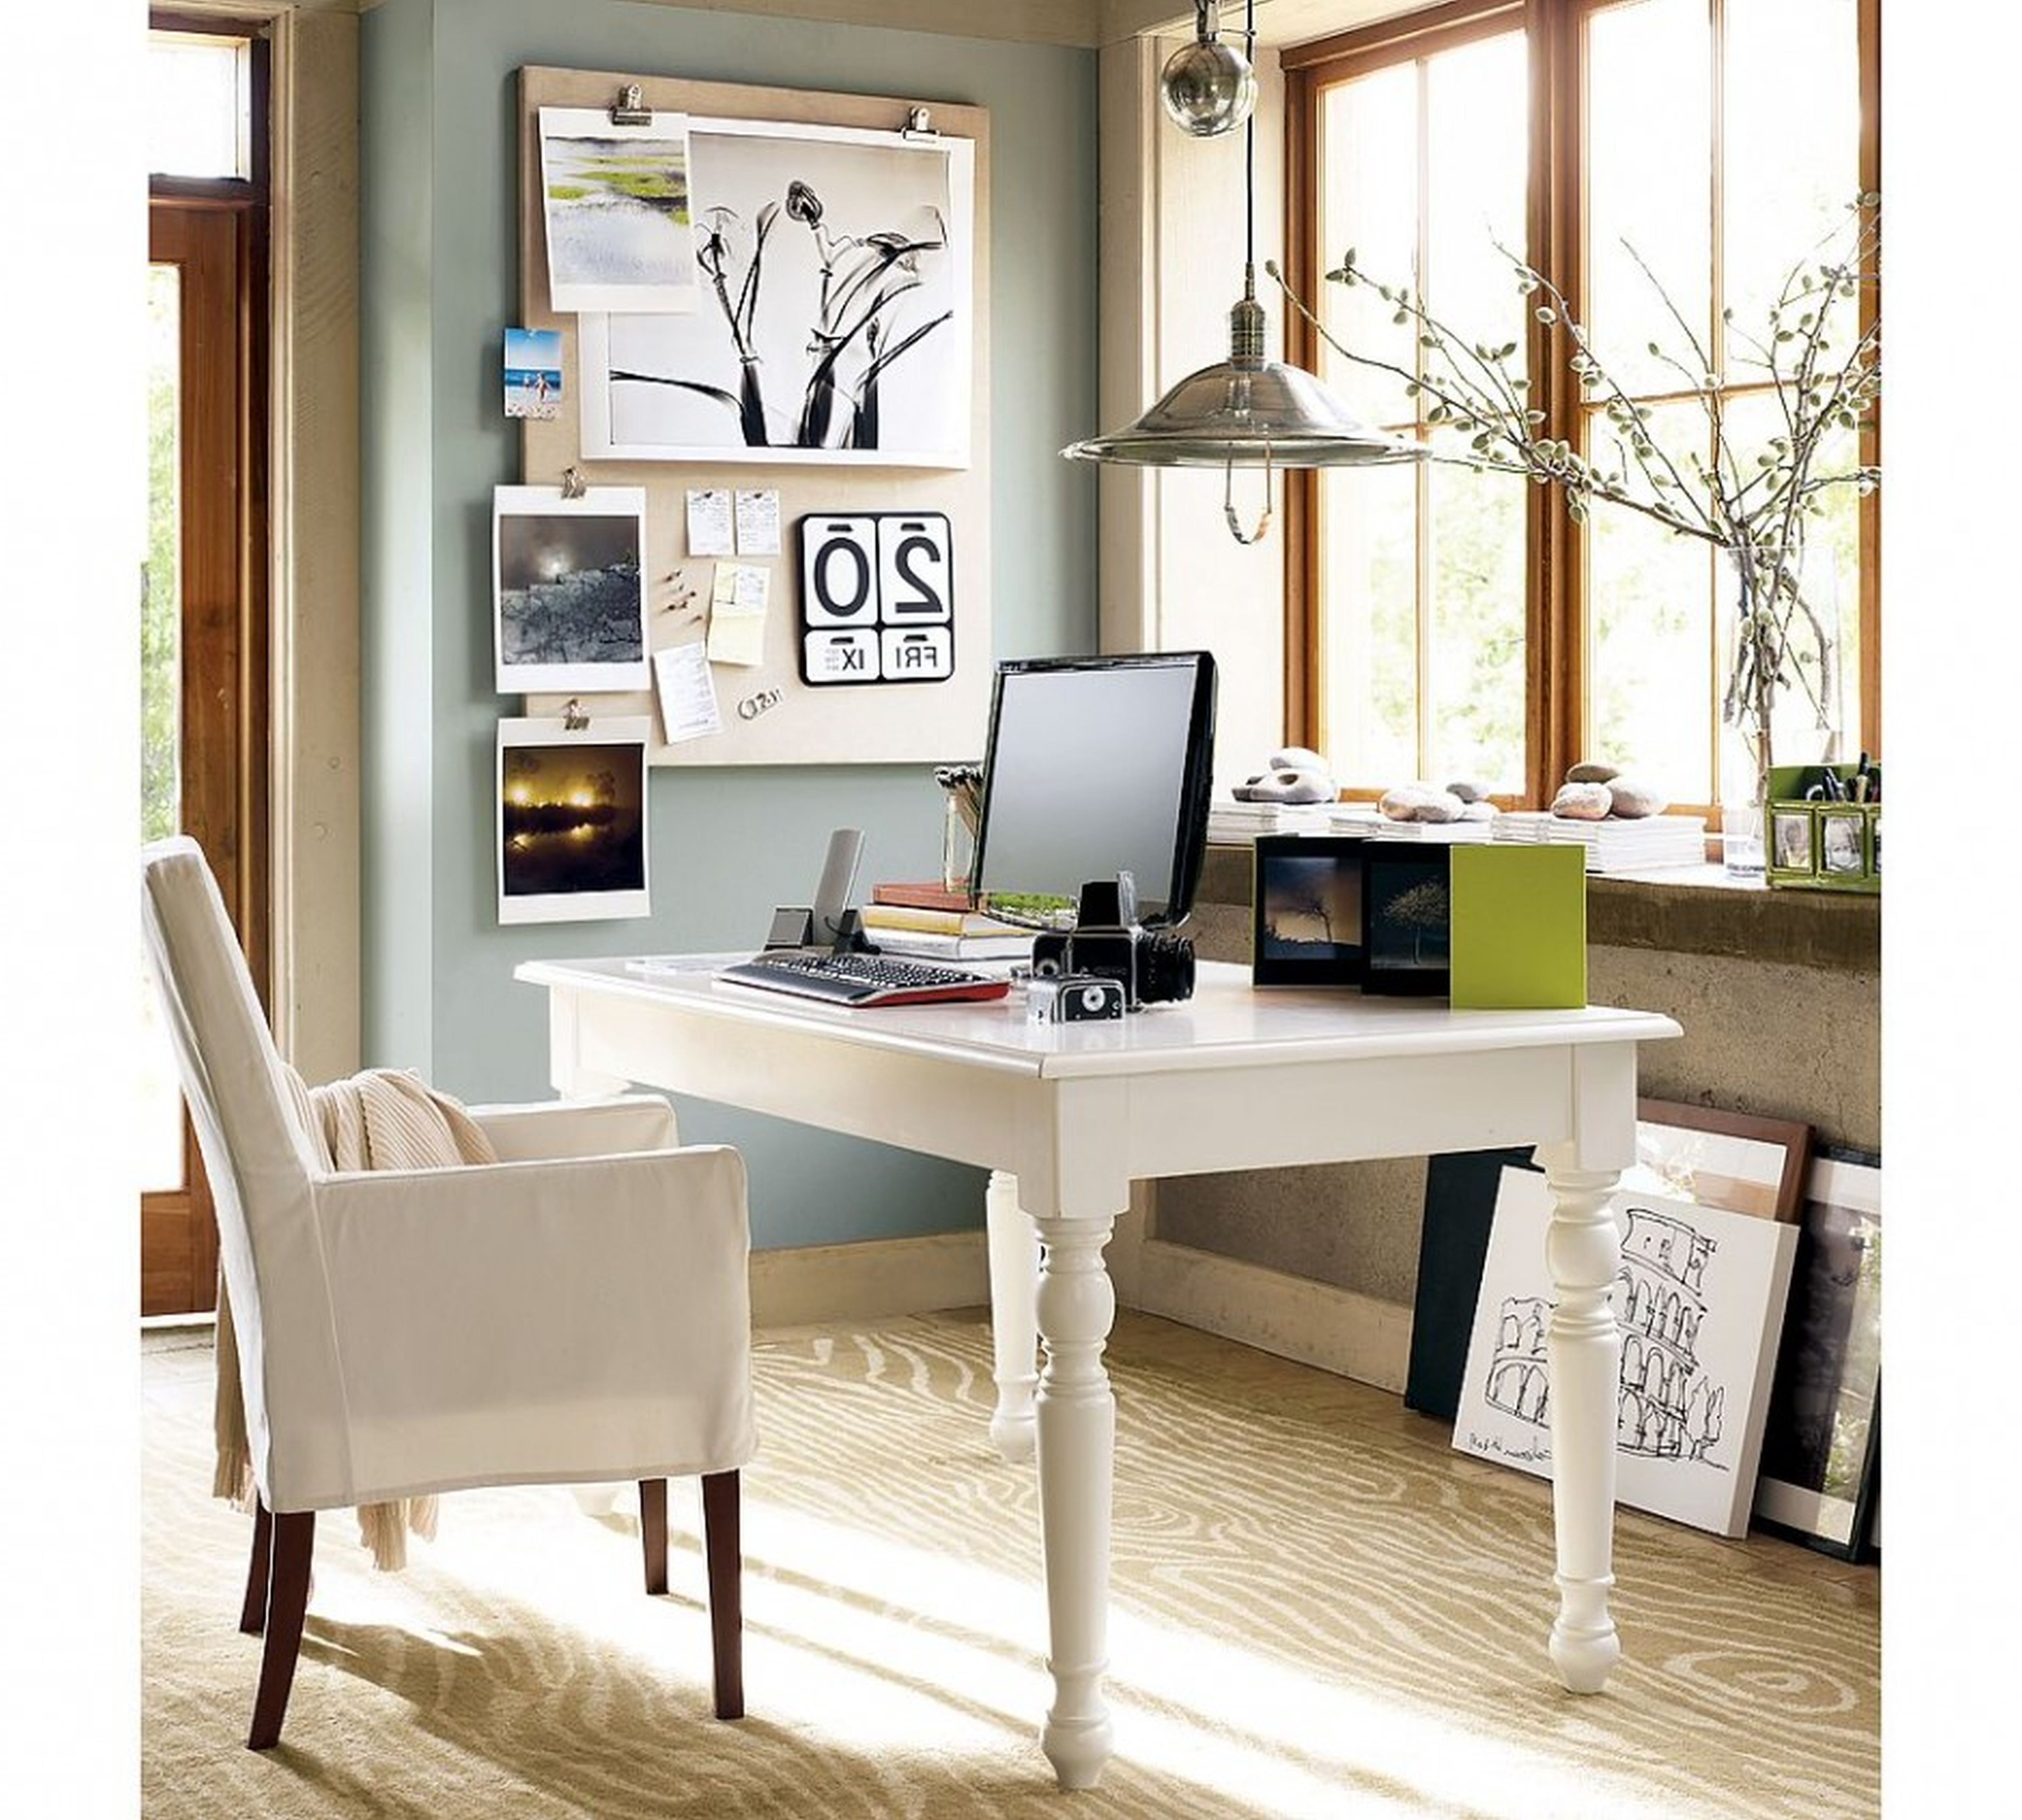 cute office decorating ideas furniture marvellous design ideas of     cute office decorating ideas furniture marvellous design ideas of cute home  office office y13 jpg  5000    4500